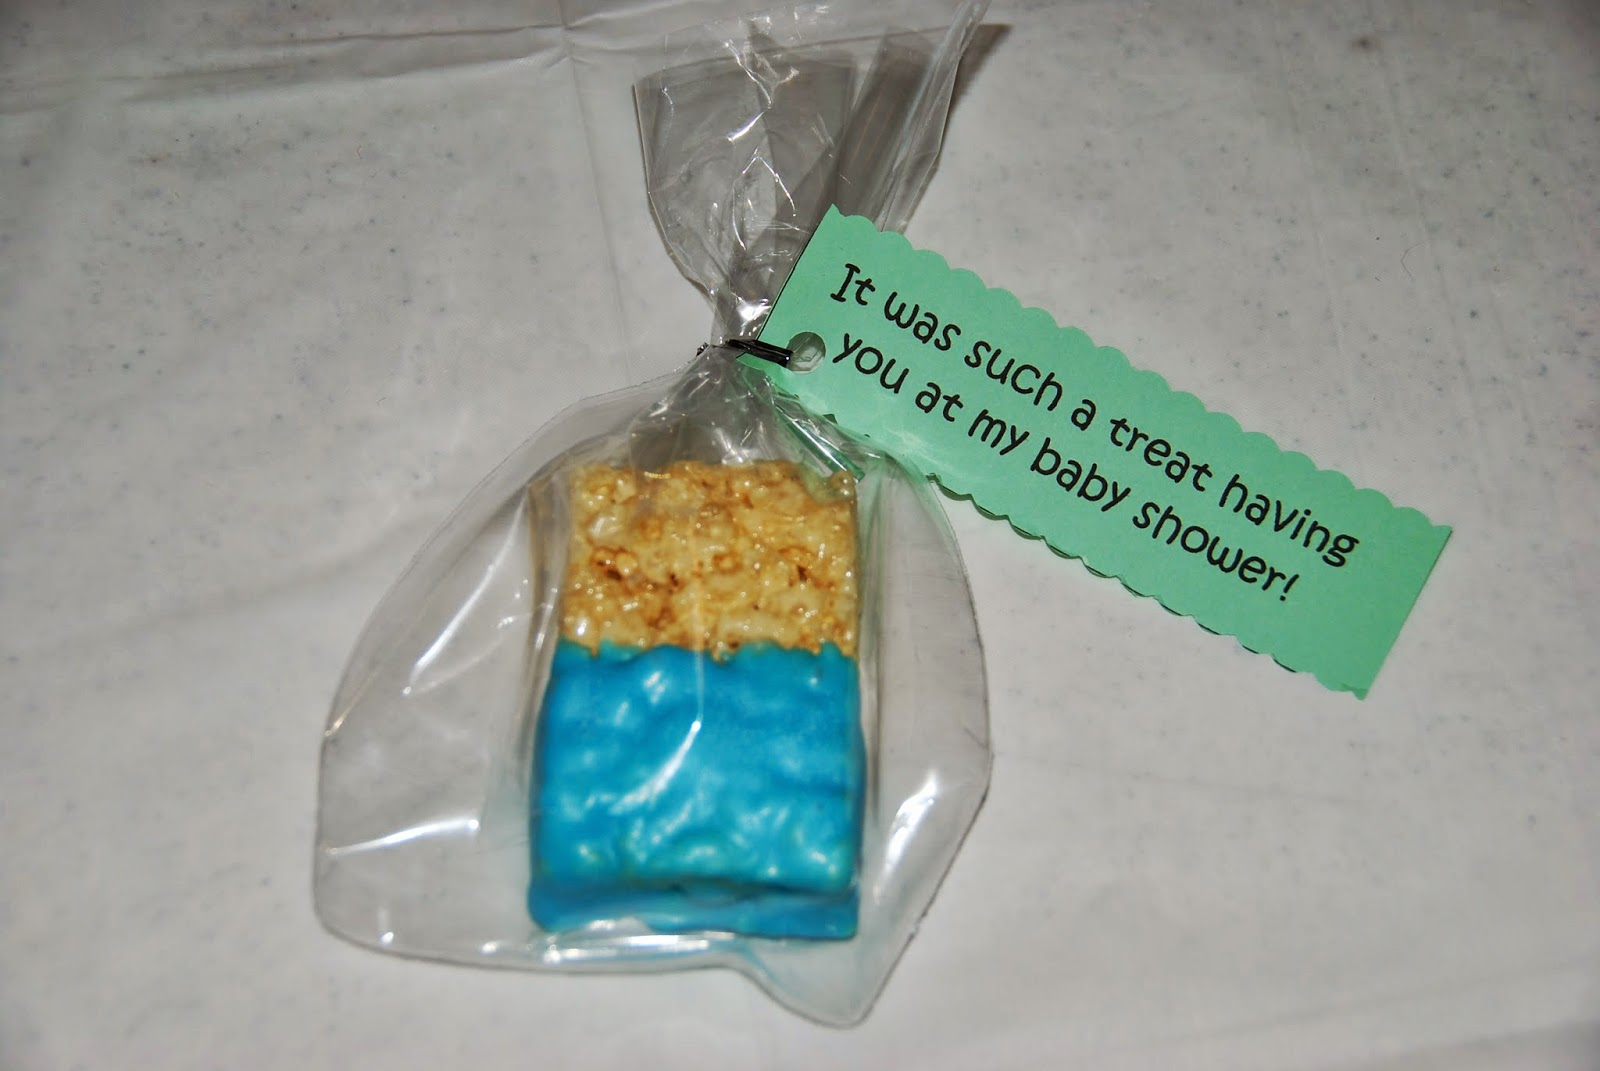 Loving Life Baby Shower Party Favor Treats